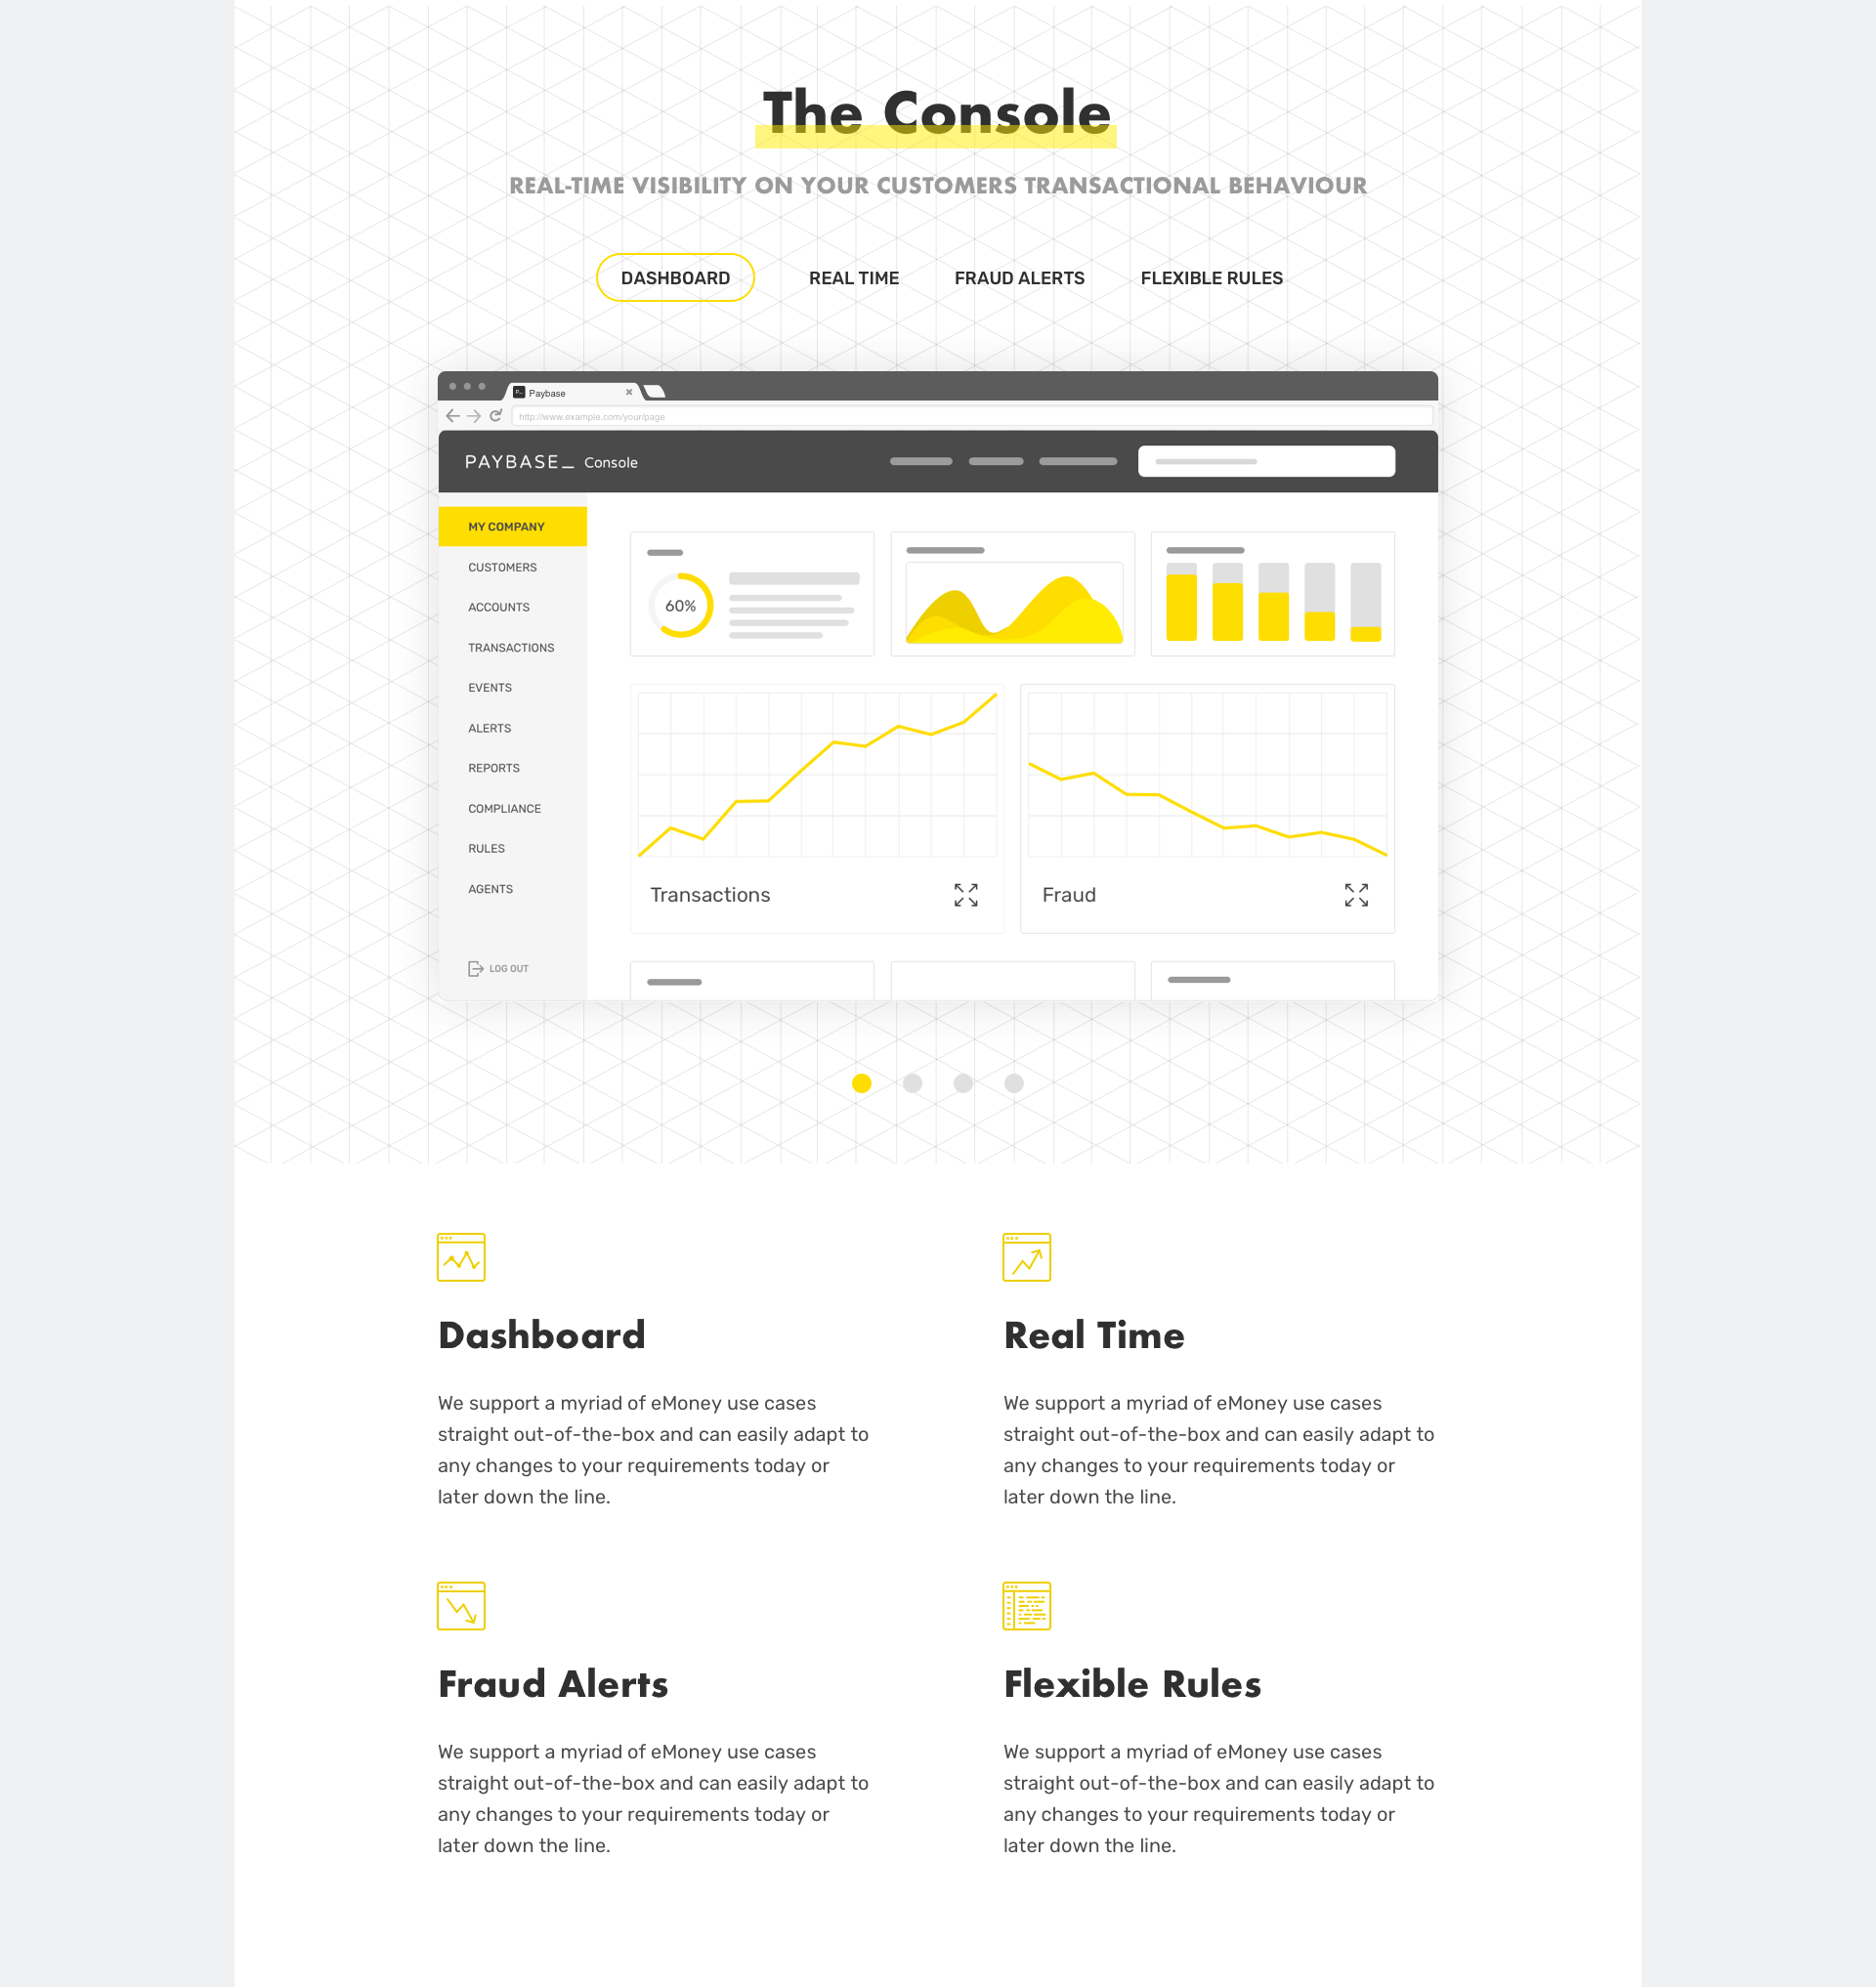 Paybase-Website-Console-Full